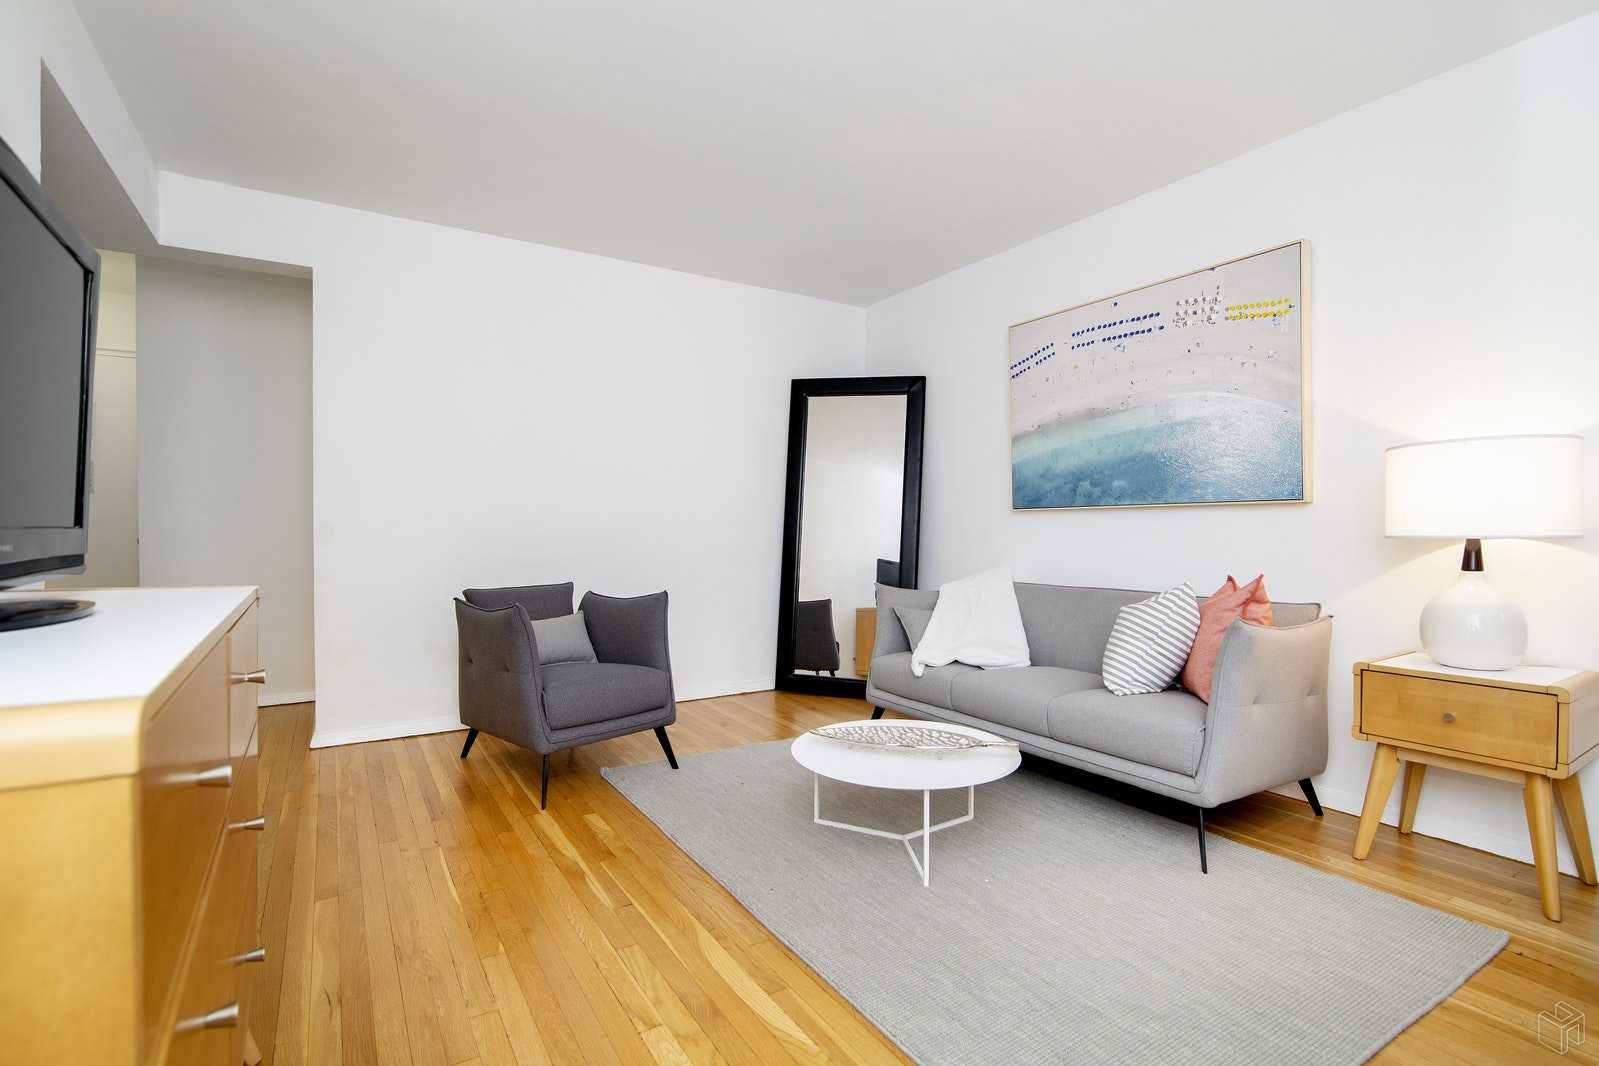 30 East 9th Street 3gg, Greenwich Village, NYC, 10003, $442,500, Sold Property, Halstead Real Estate, Photo 1